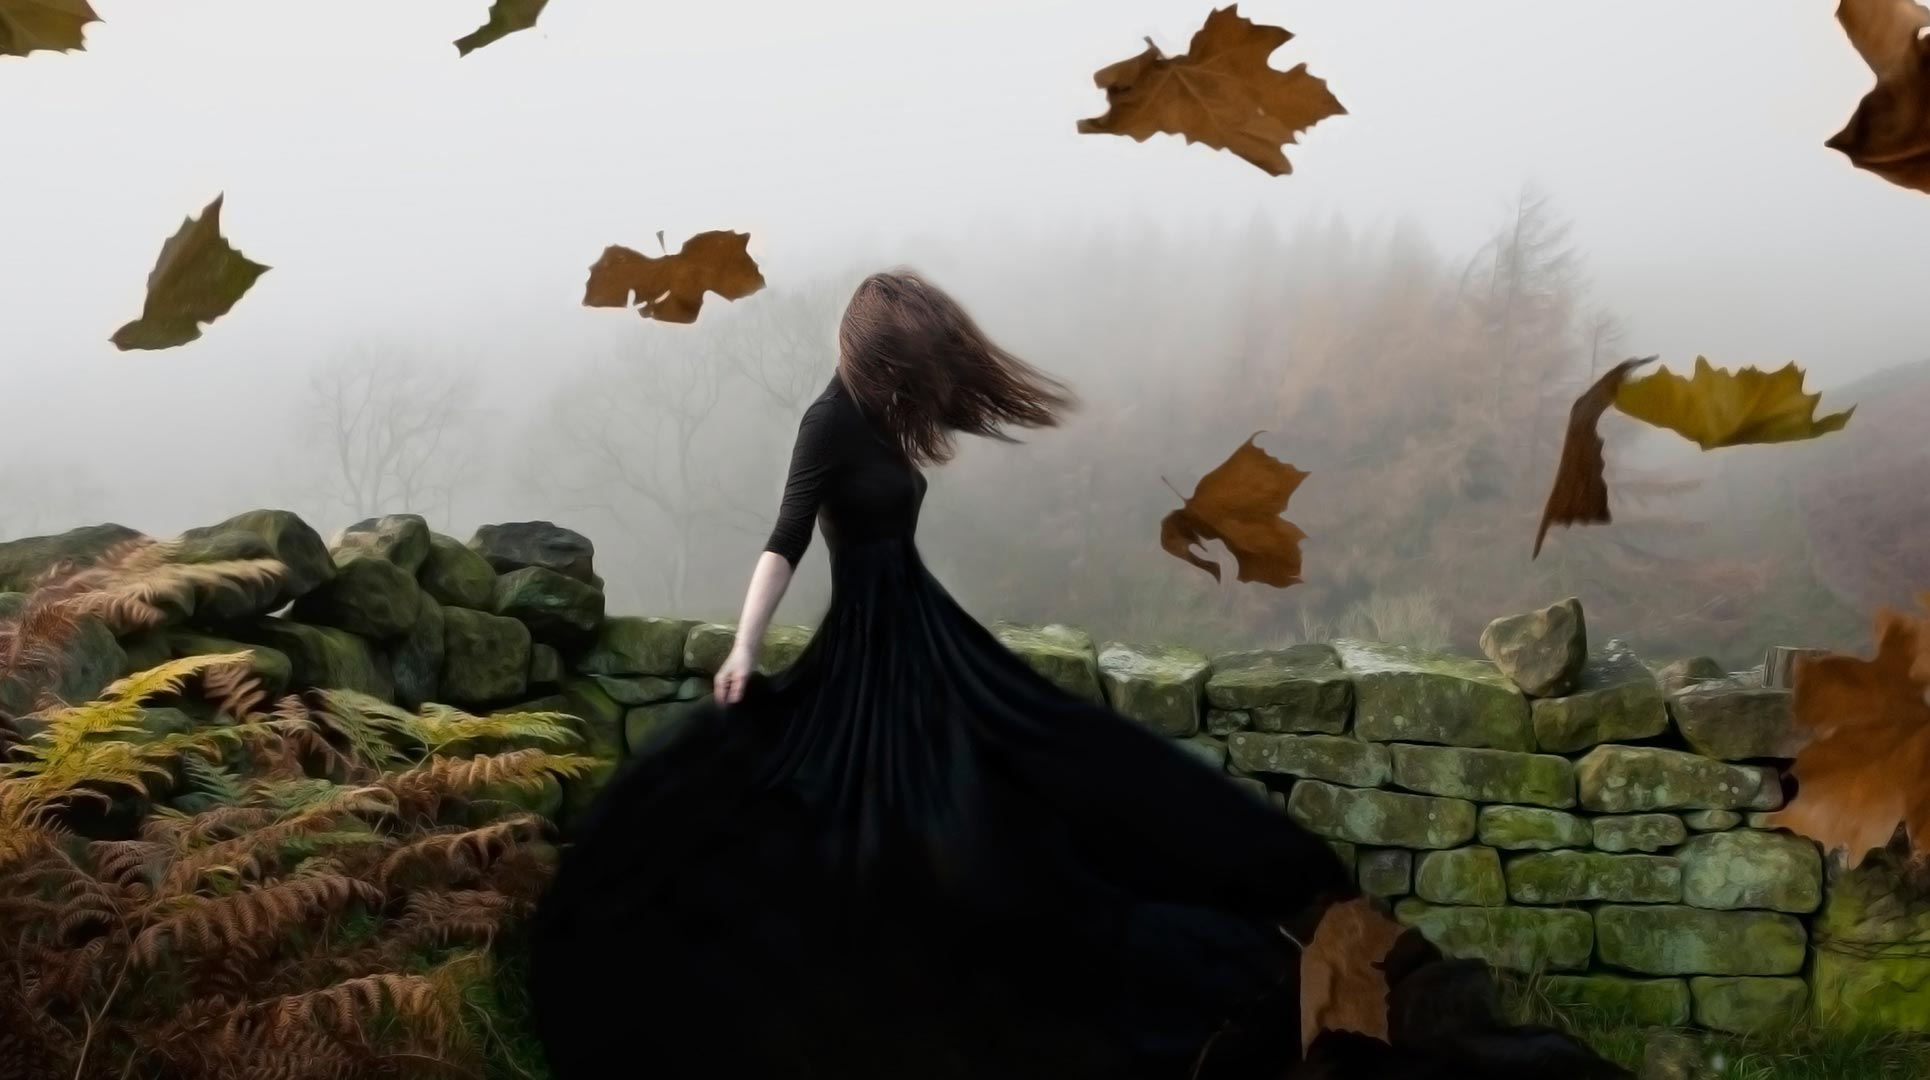 Nicola_Taylor_Art_Photography_Like_Ghosts_from_an_Enchanter_Fleeing_1